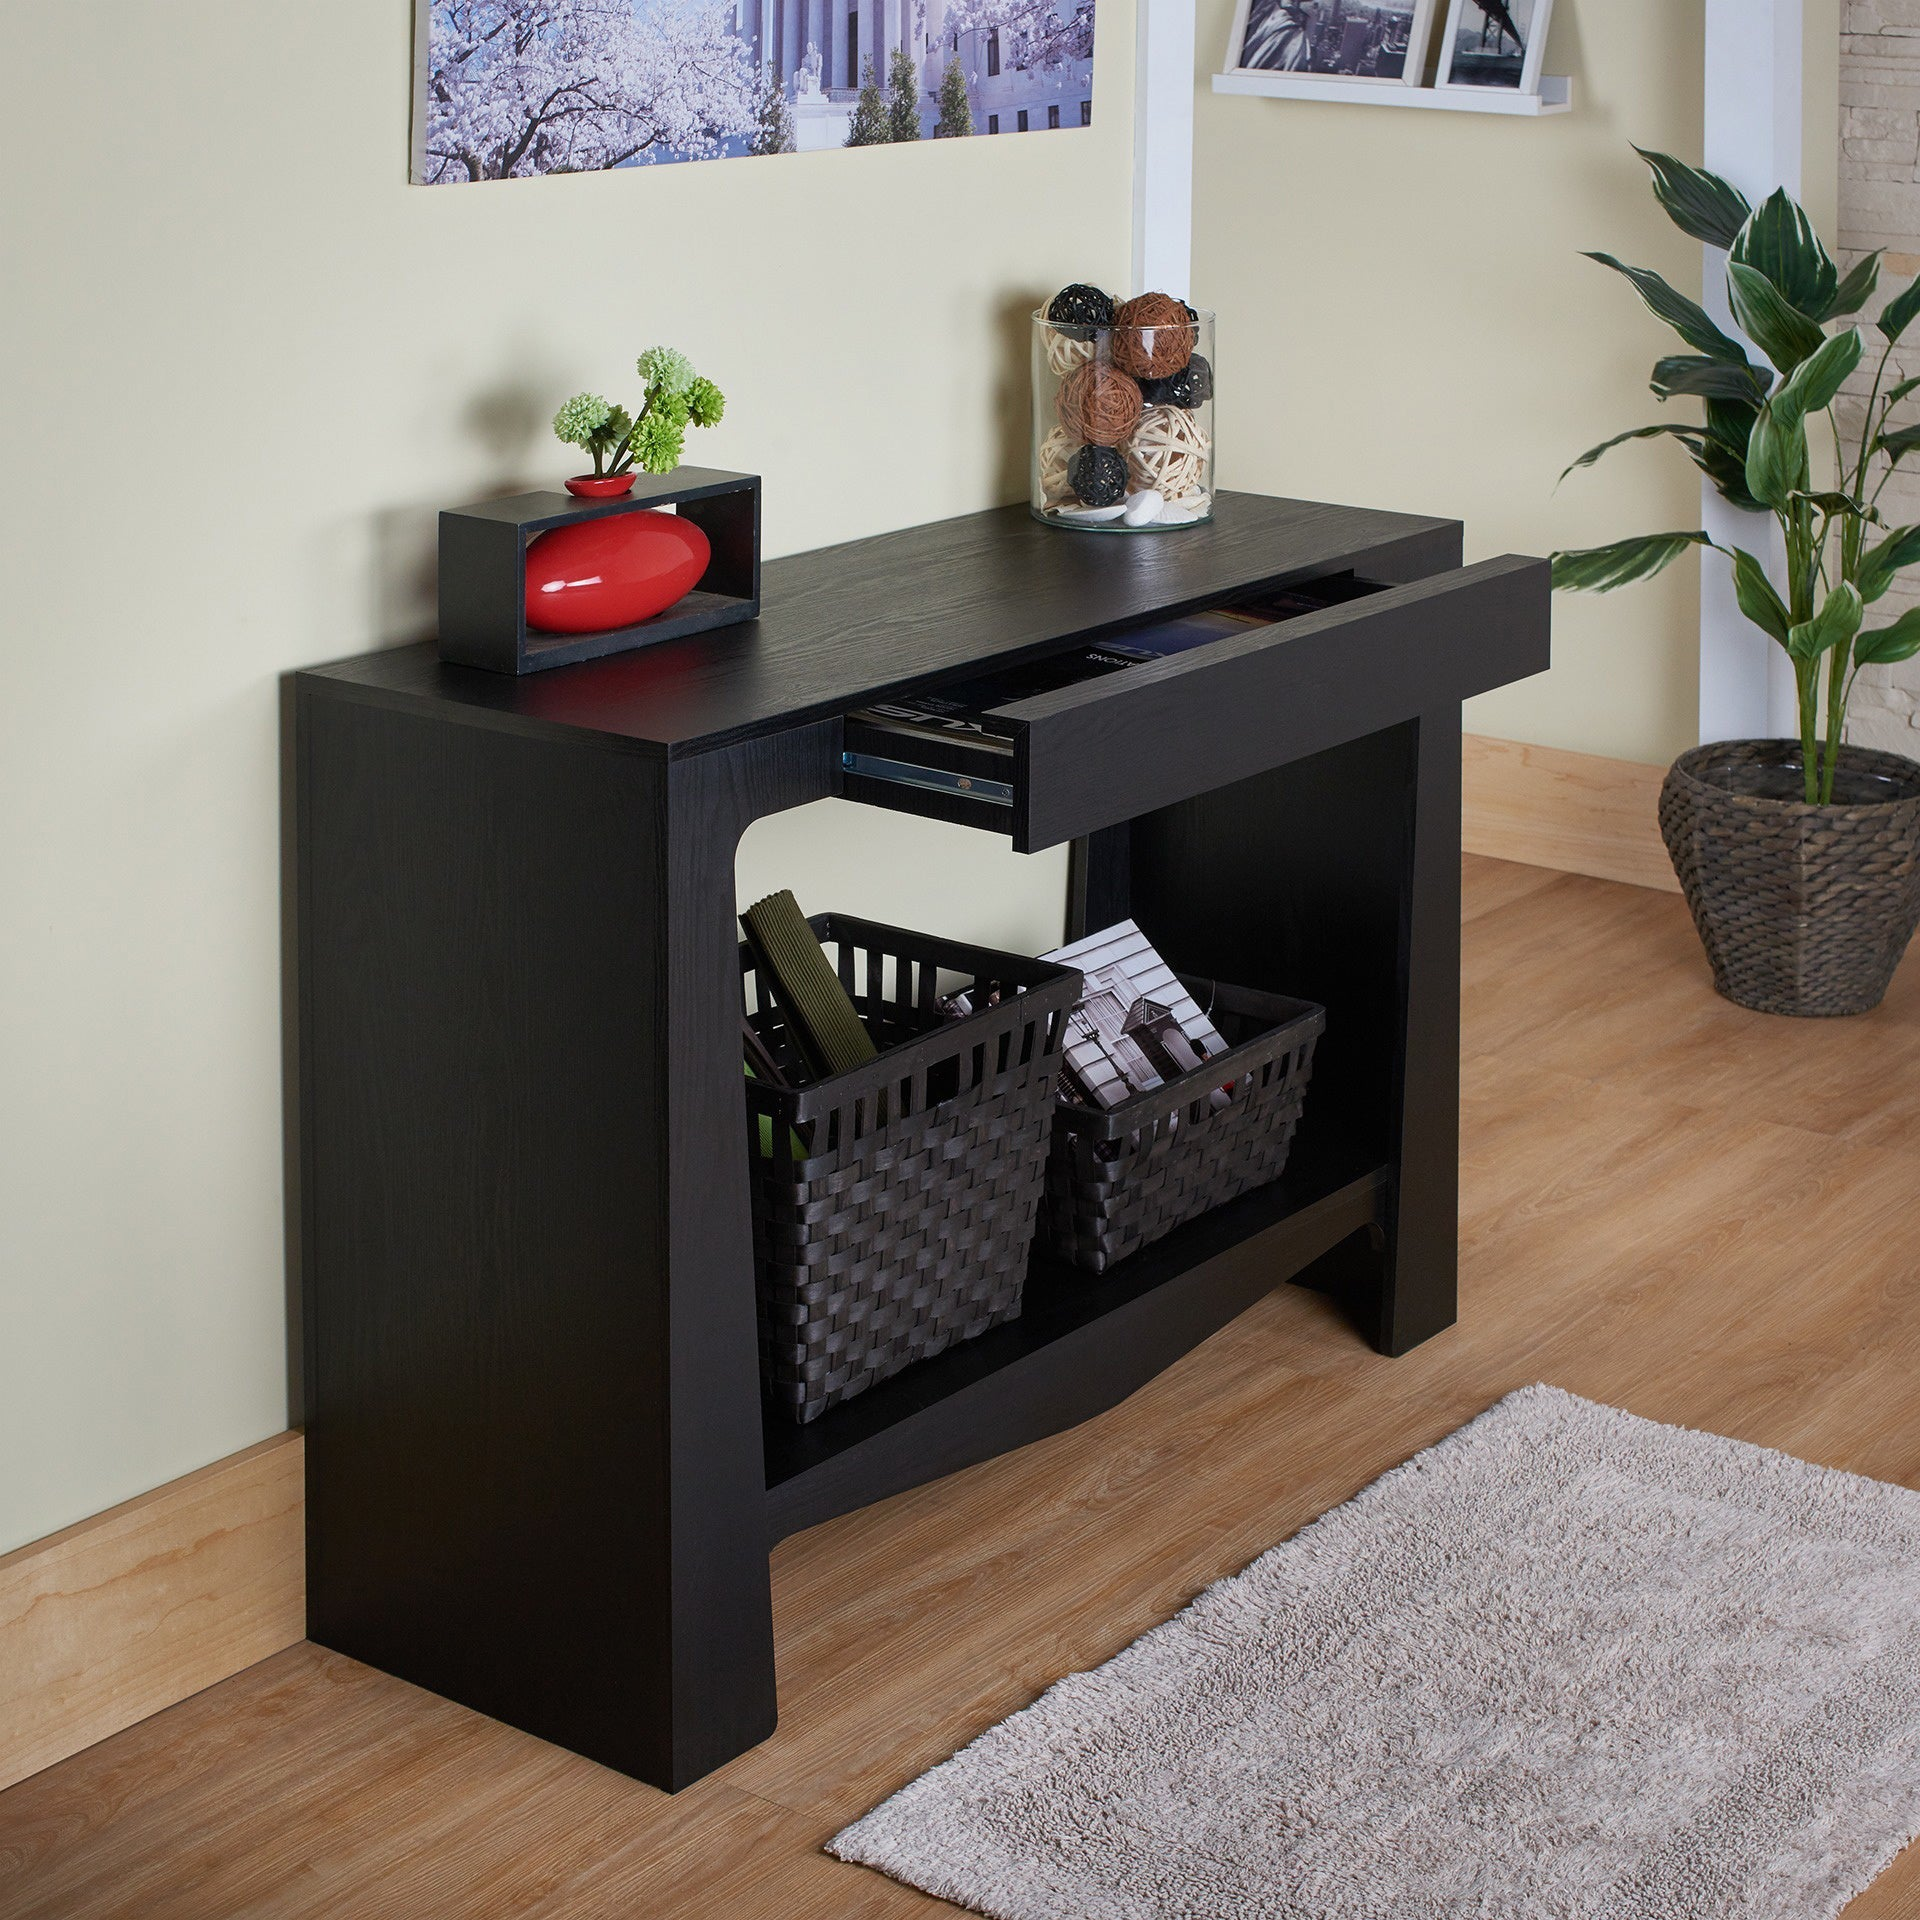 Shop Furniture Of America Urbana Modern Hall/ Entry Way Black Console Table    On Sale   Free Shipping Today   Overstock.com   7847822